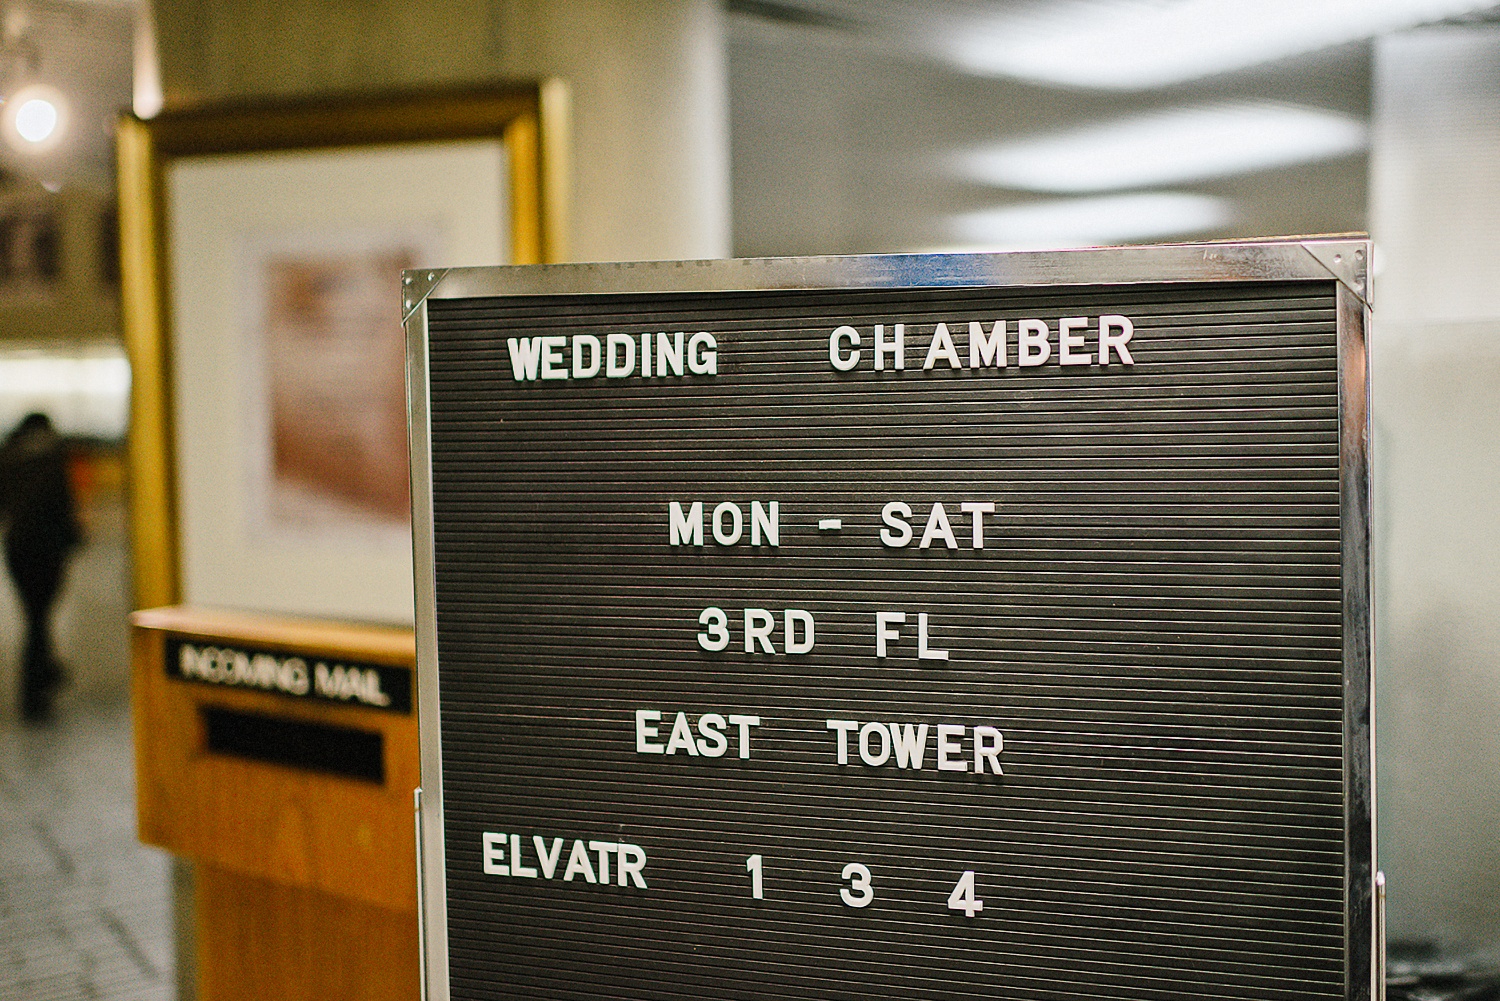 49-Best-Elopement-Photographers-Toronto-Fall-Wedding-Elopement-Modern-Vintage-Hipster-Bride-and-groom-City-Hall-Sign-Detail.JPG